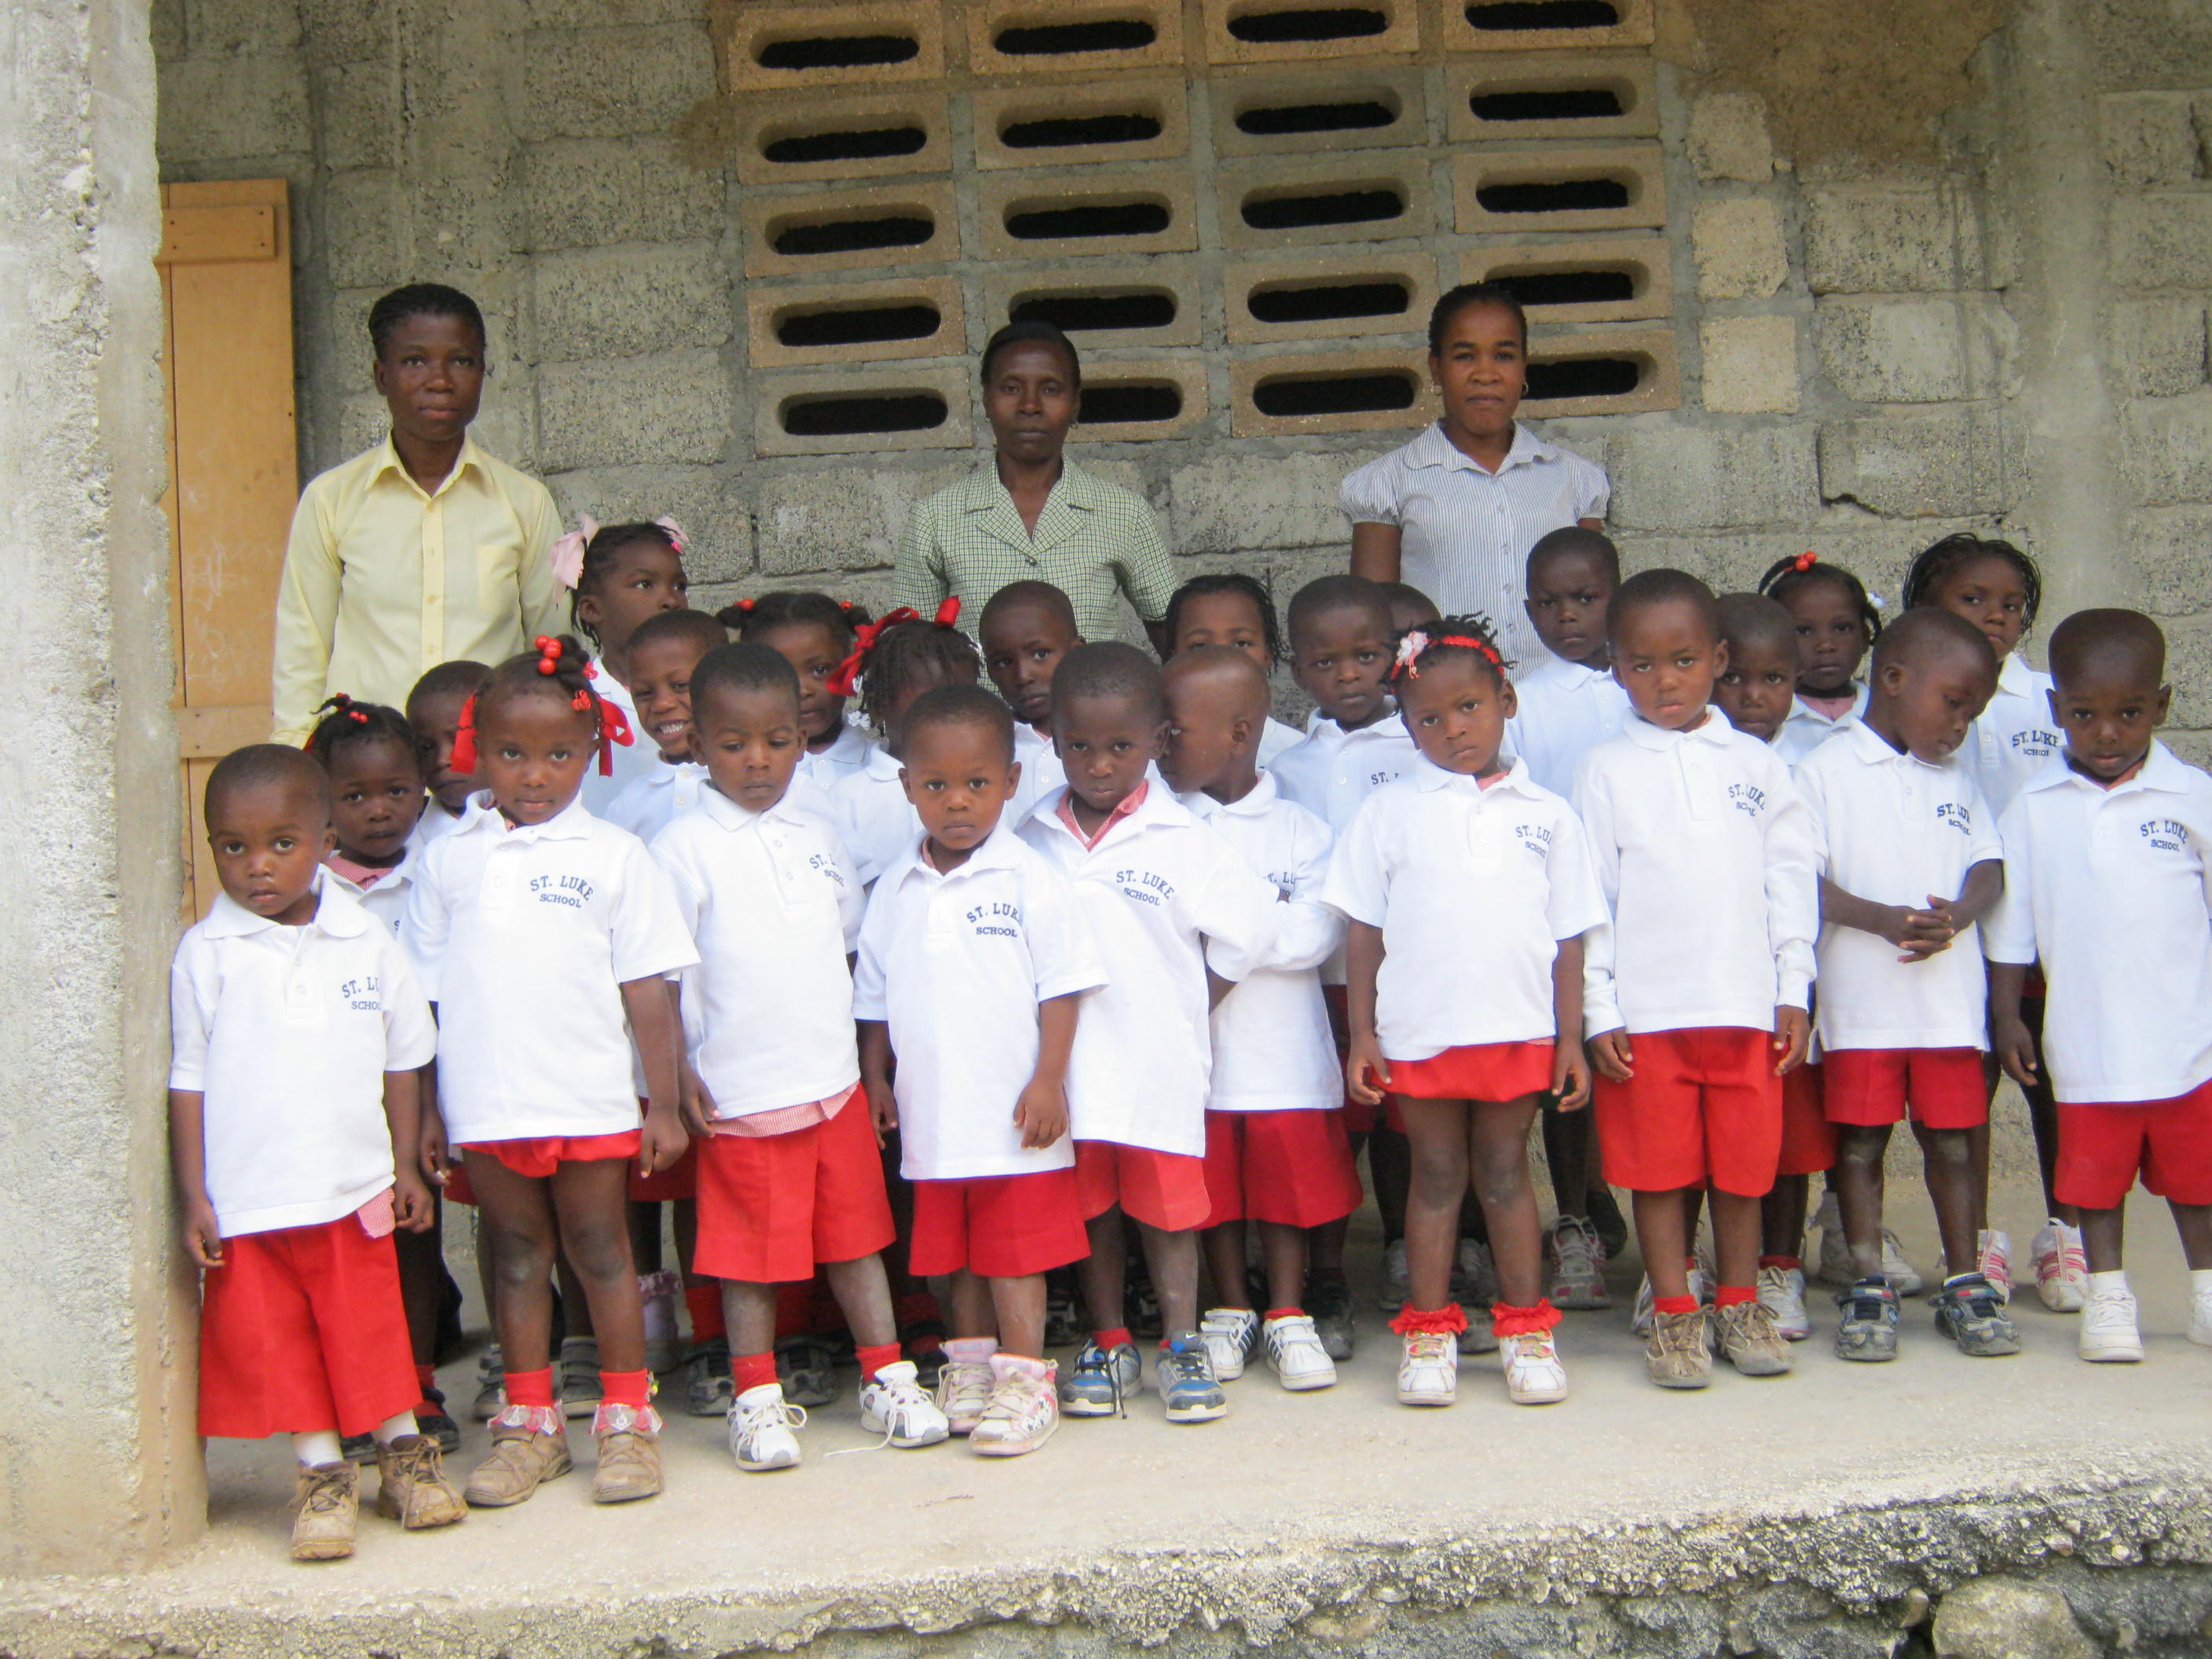 Kindergarten in St. Luke uniforms